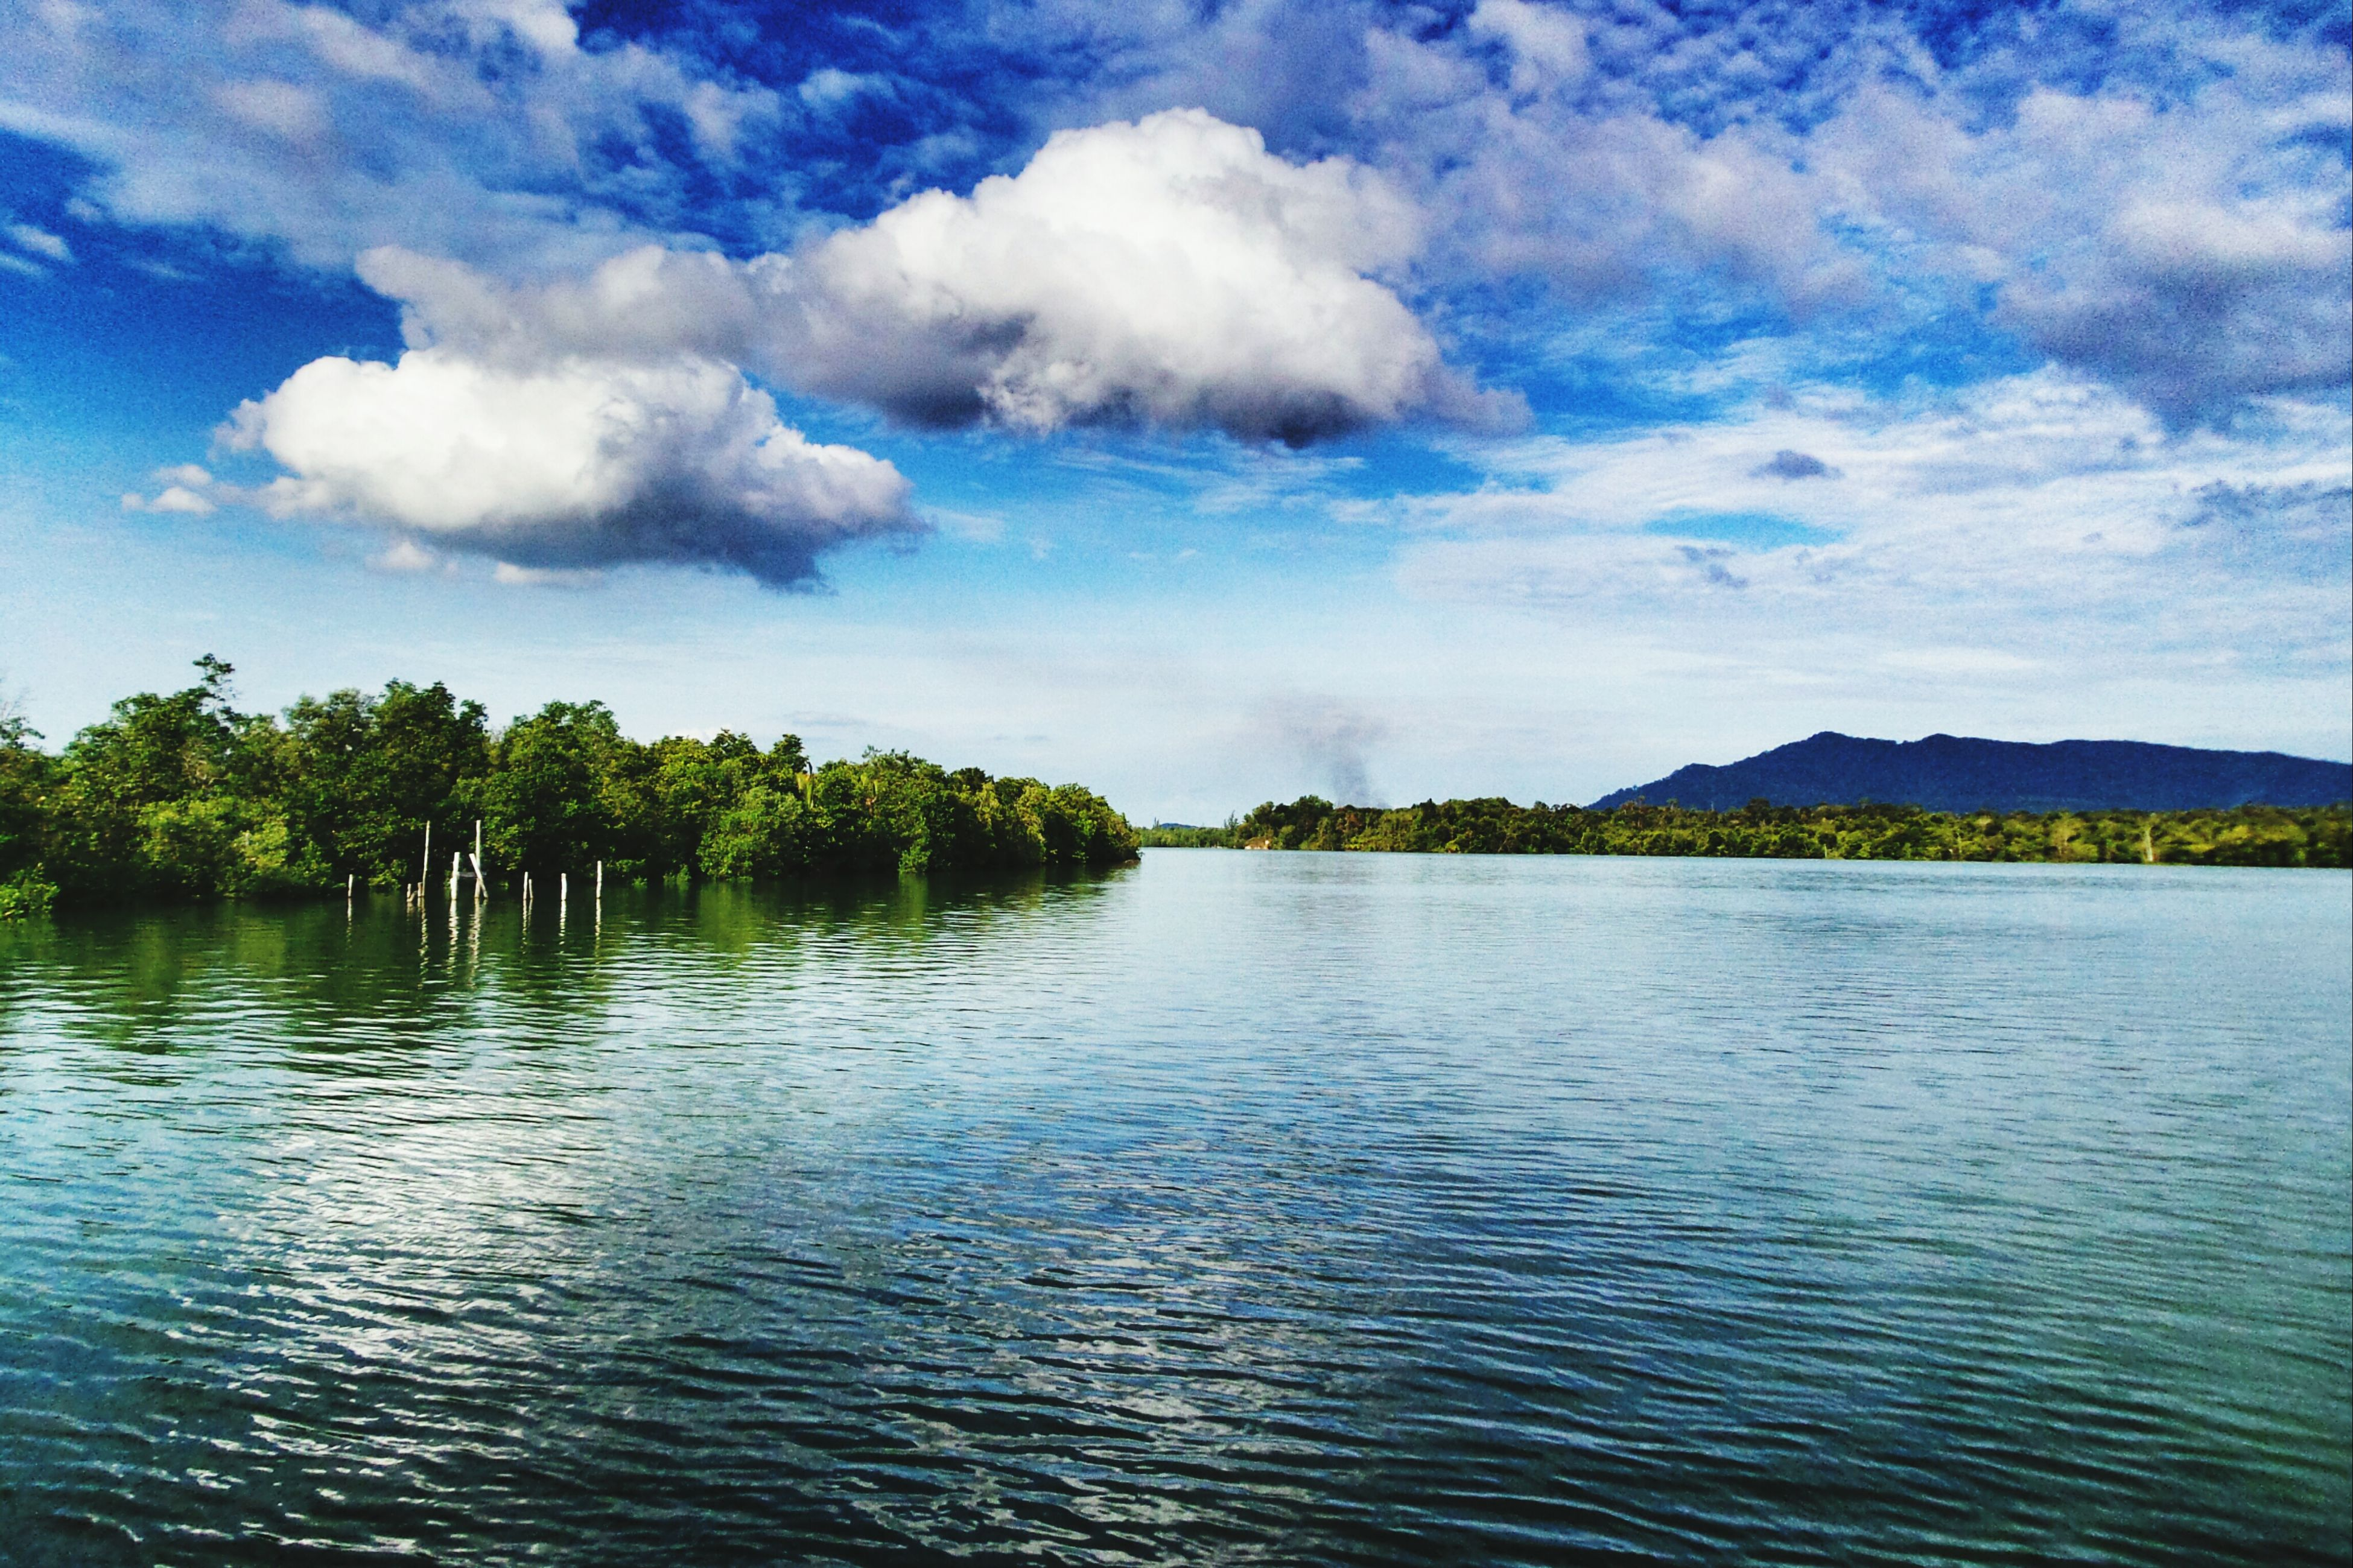 water, sky, tranquil scene, waterfront, tranquility, scenics, cloud - sky, beauty in nature, rippled, cloud, lake, tree, nature, blue, river, idyllic, cloudy, mountain, day, outdoors